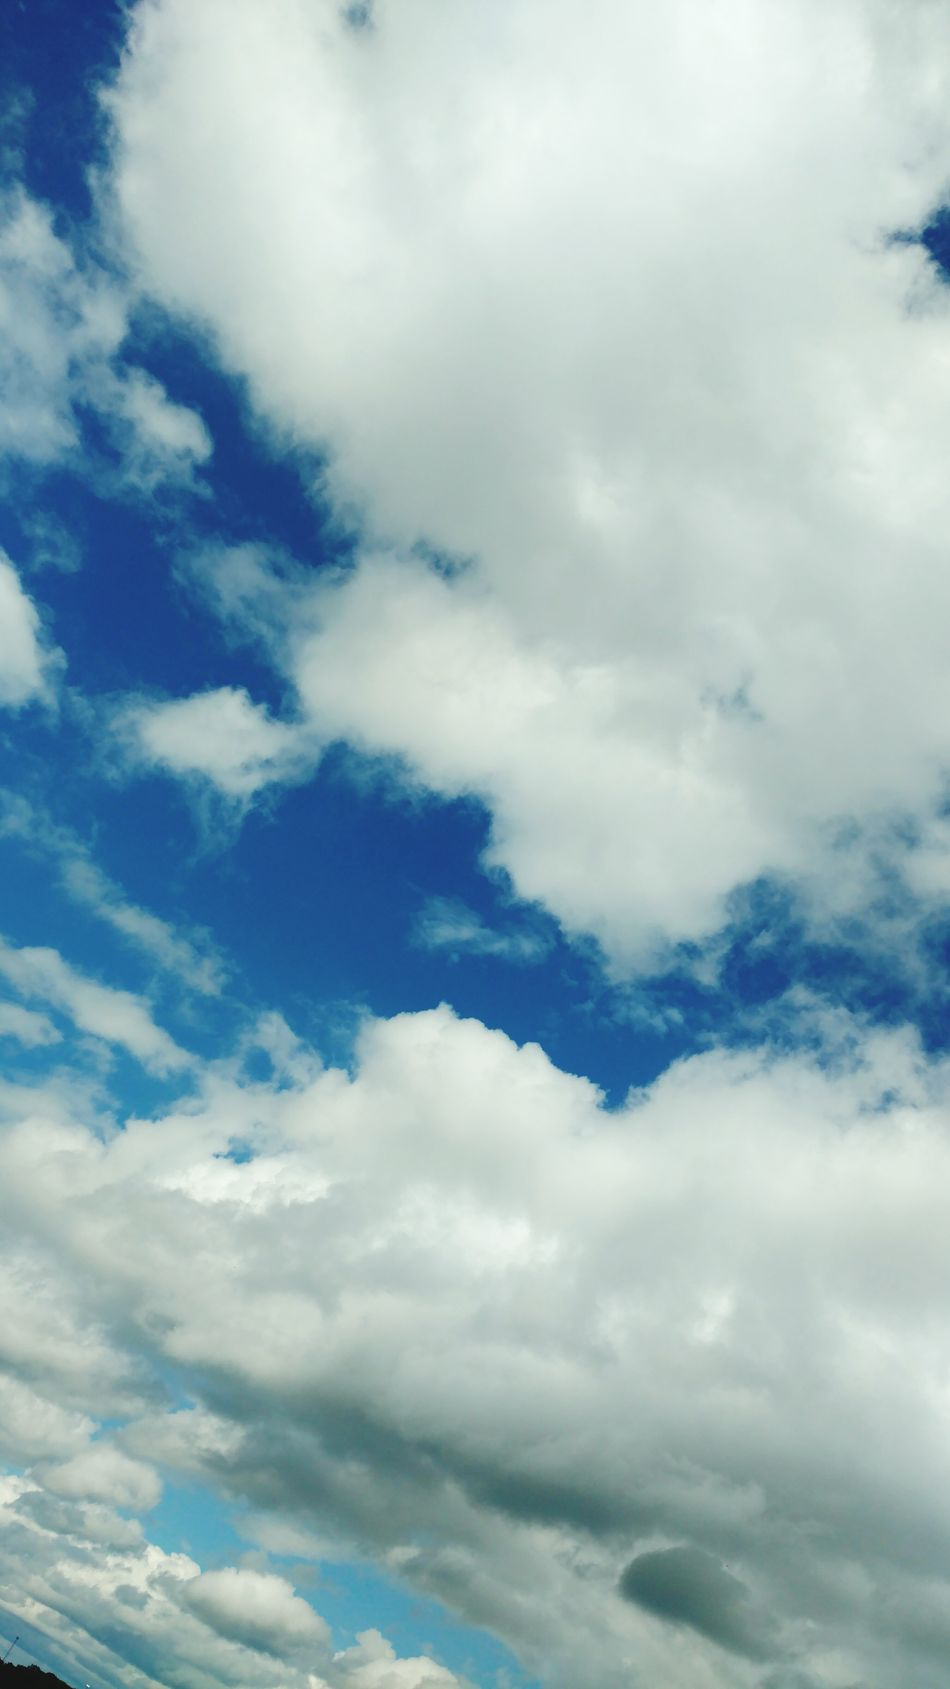 Beauty of the heavens. Enjoying Life Outdoor Photography Sunny Skies Cloud Clouds And Sky Cloud - Sky Cloudy Clouds Serenity Skies Sky And Clouds